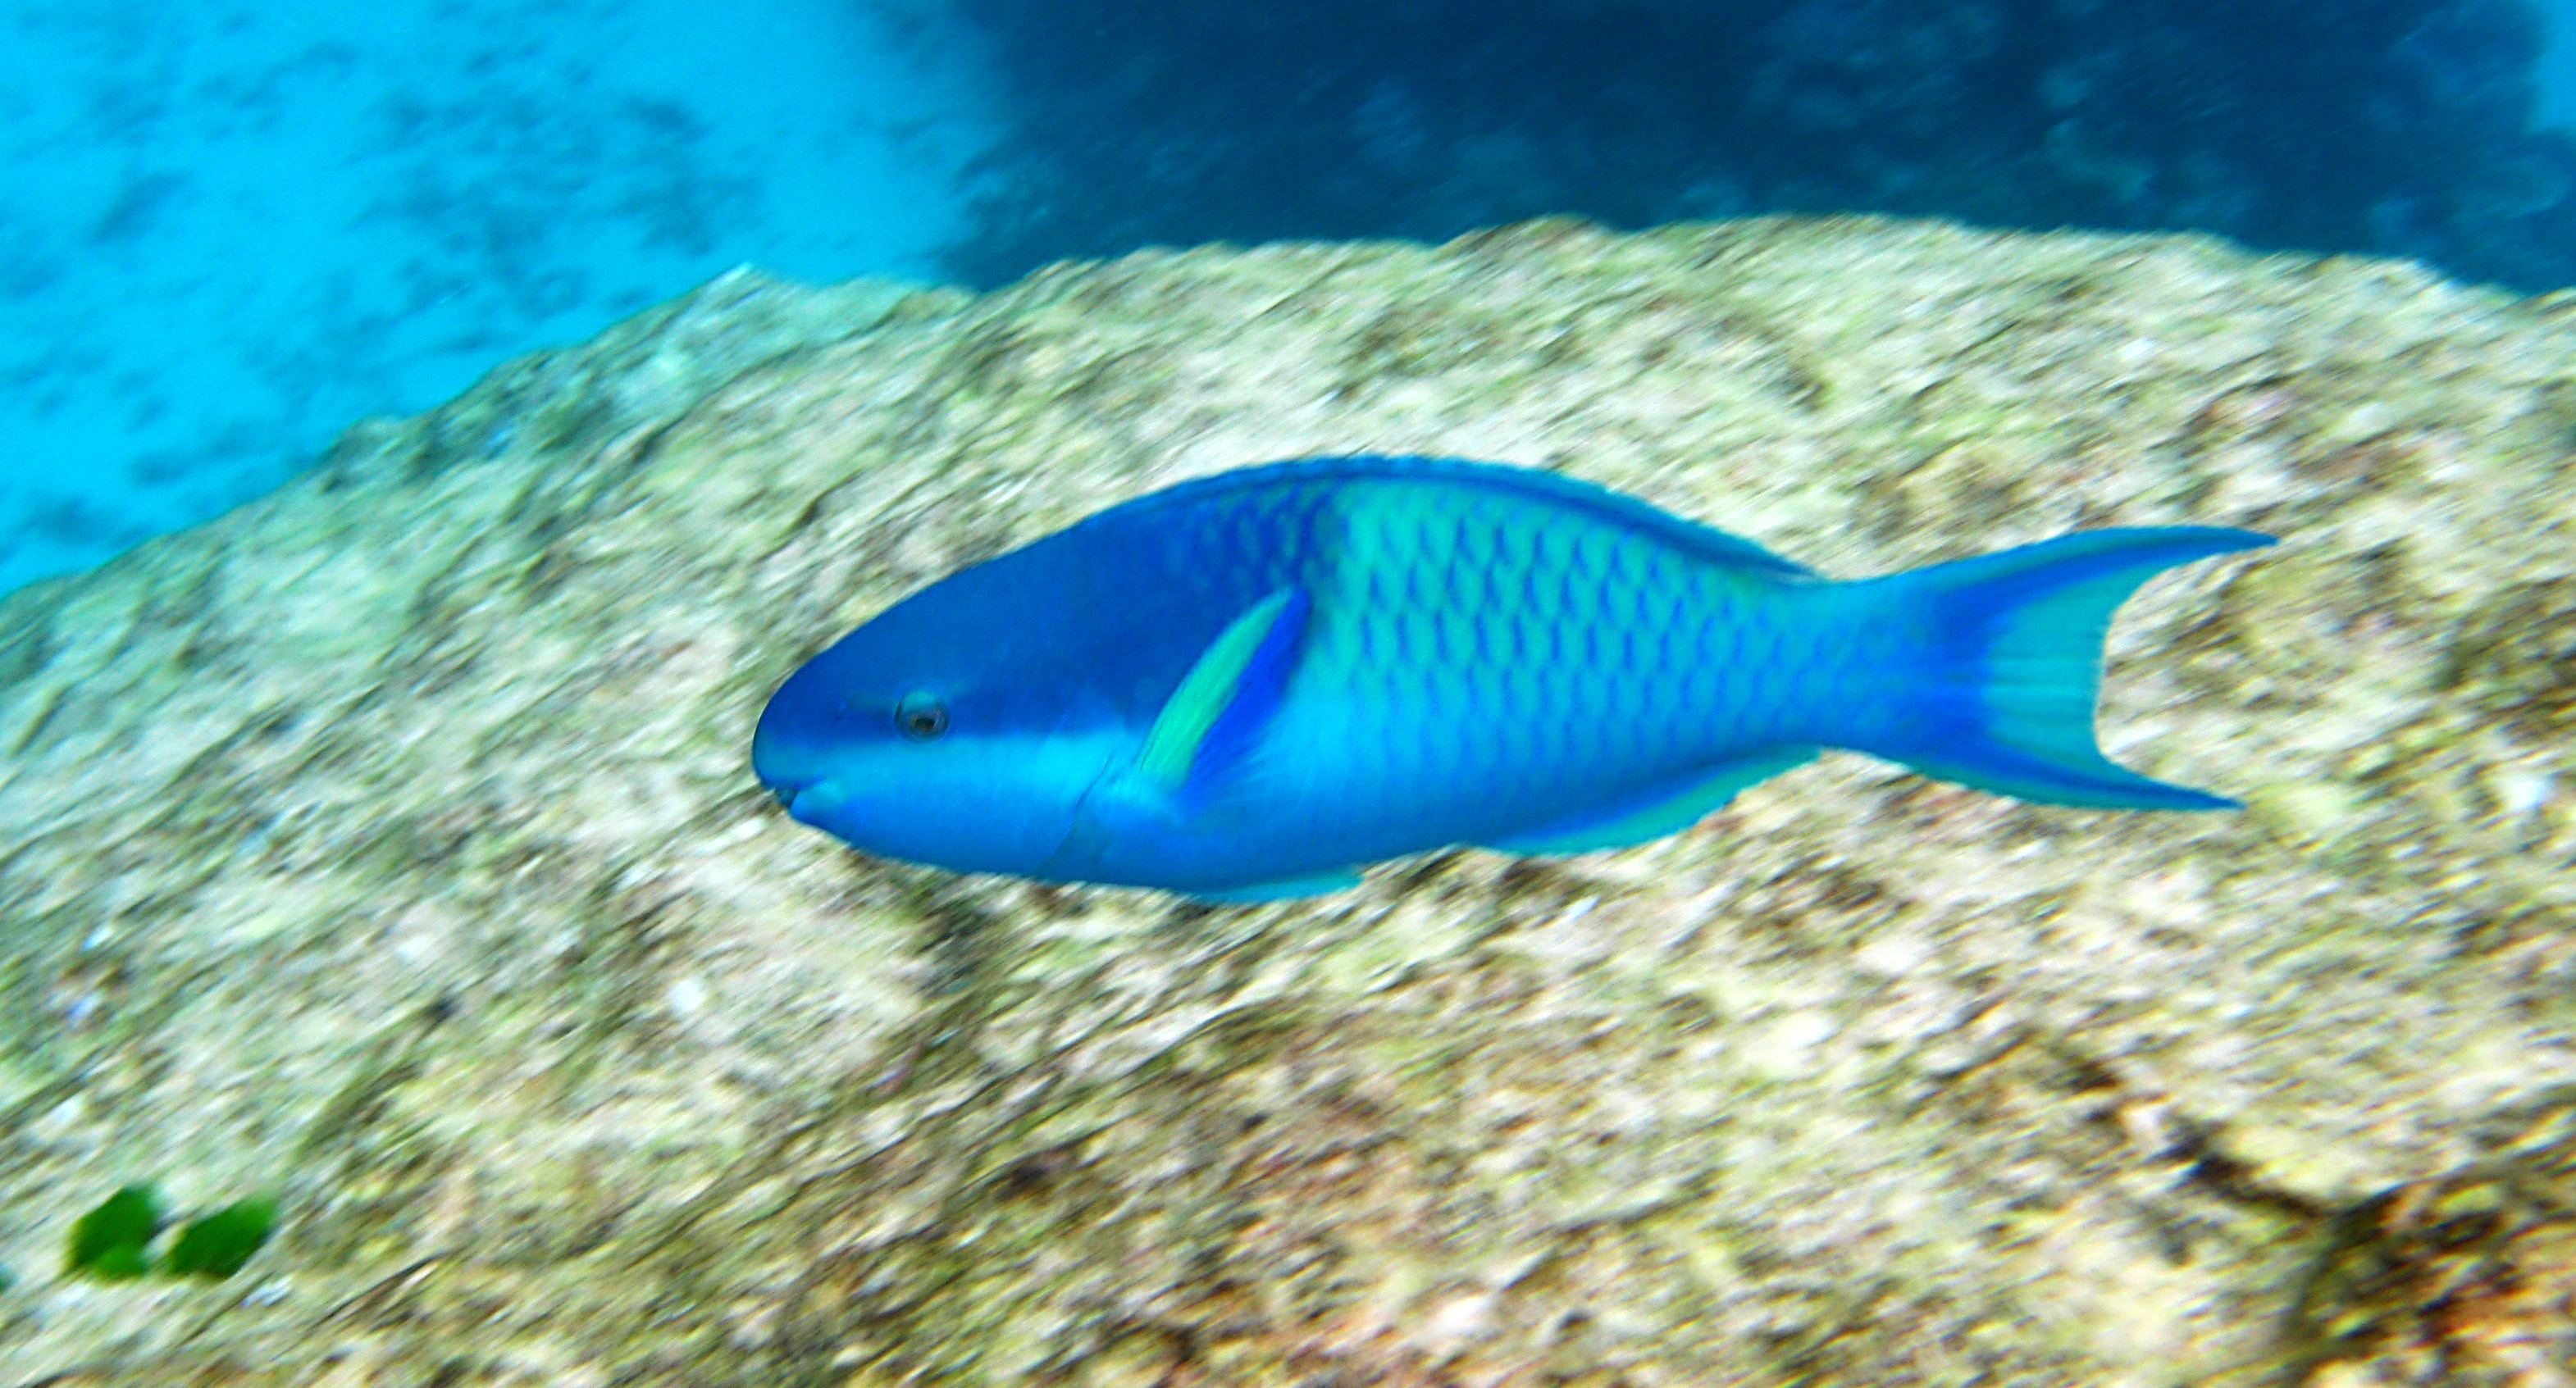 File dark capped wikimedia commons for Blue parrot fish